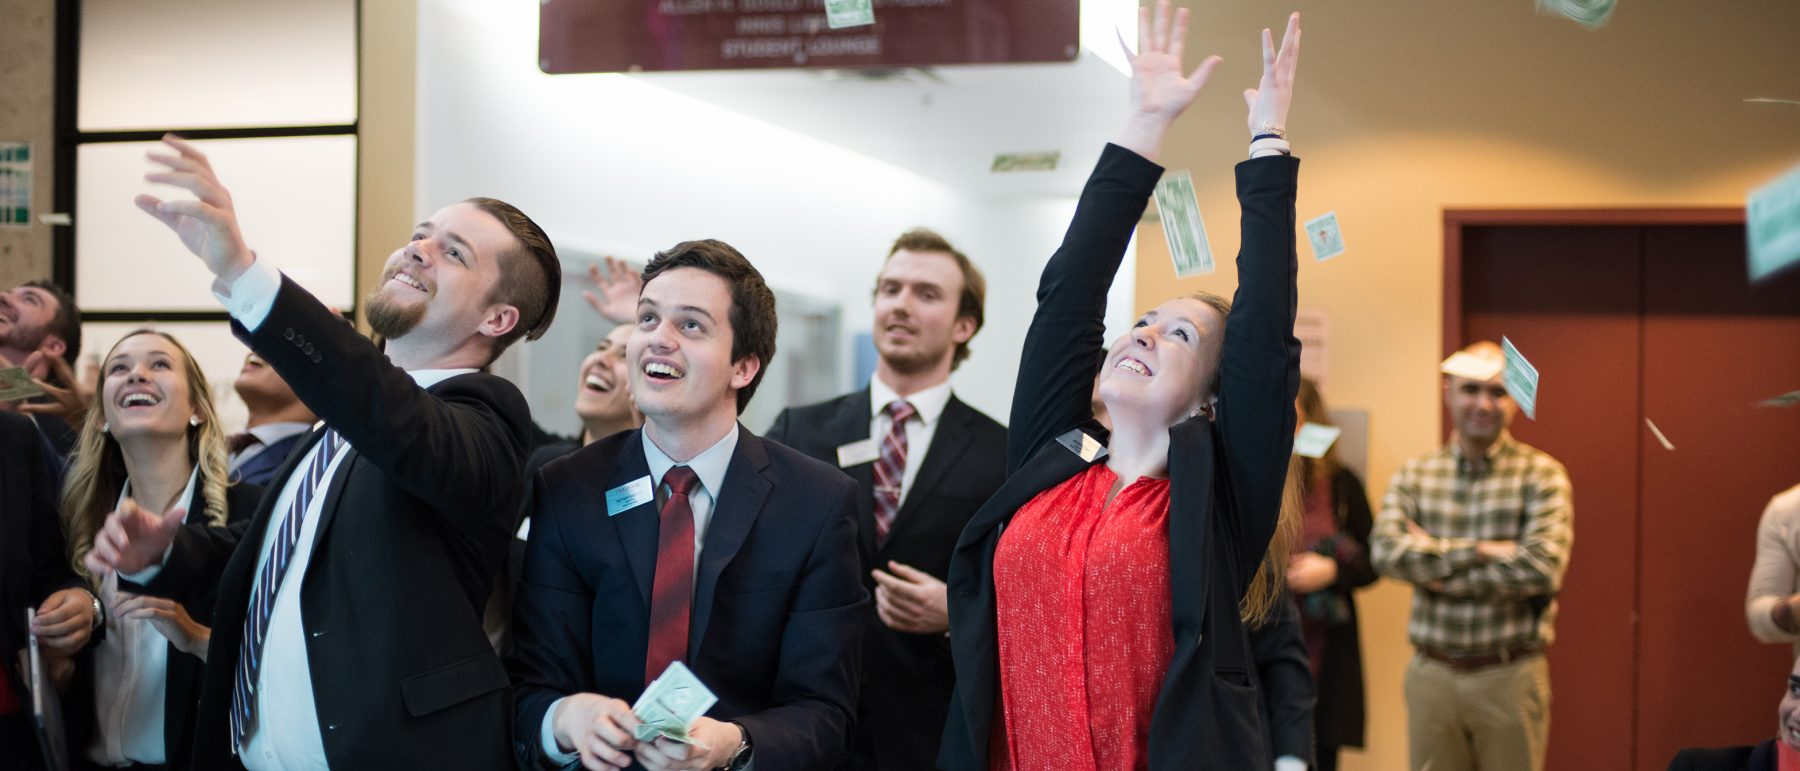 A group of business students throwing a pile of papers in the air